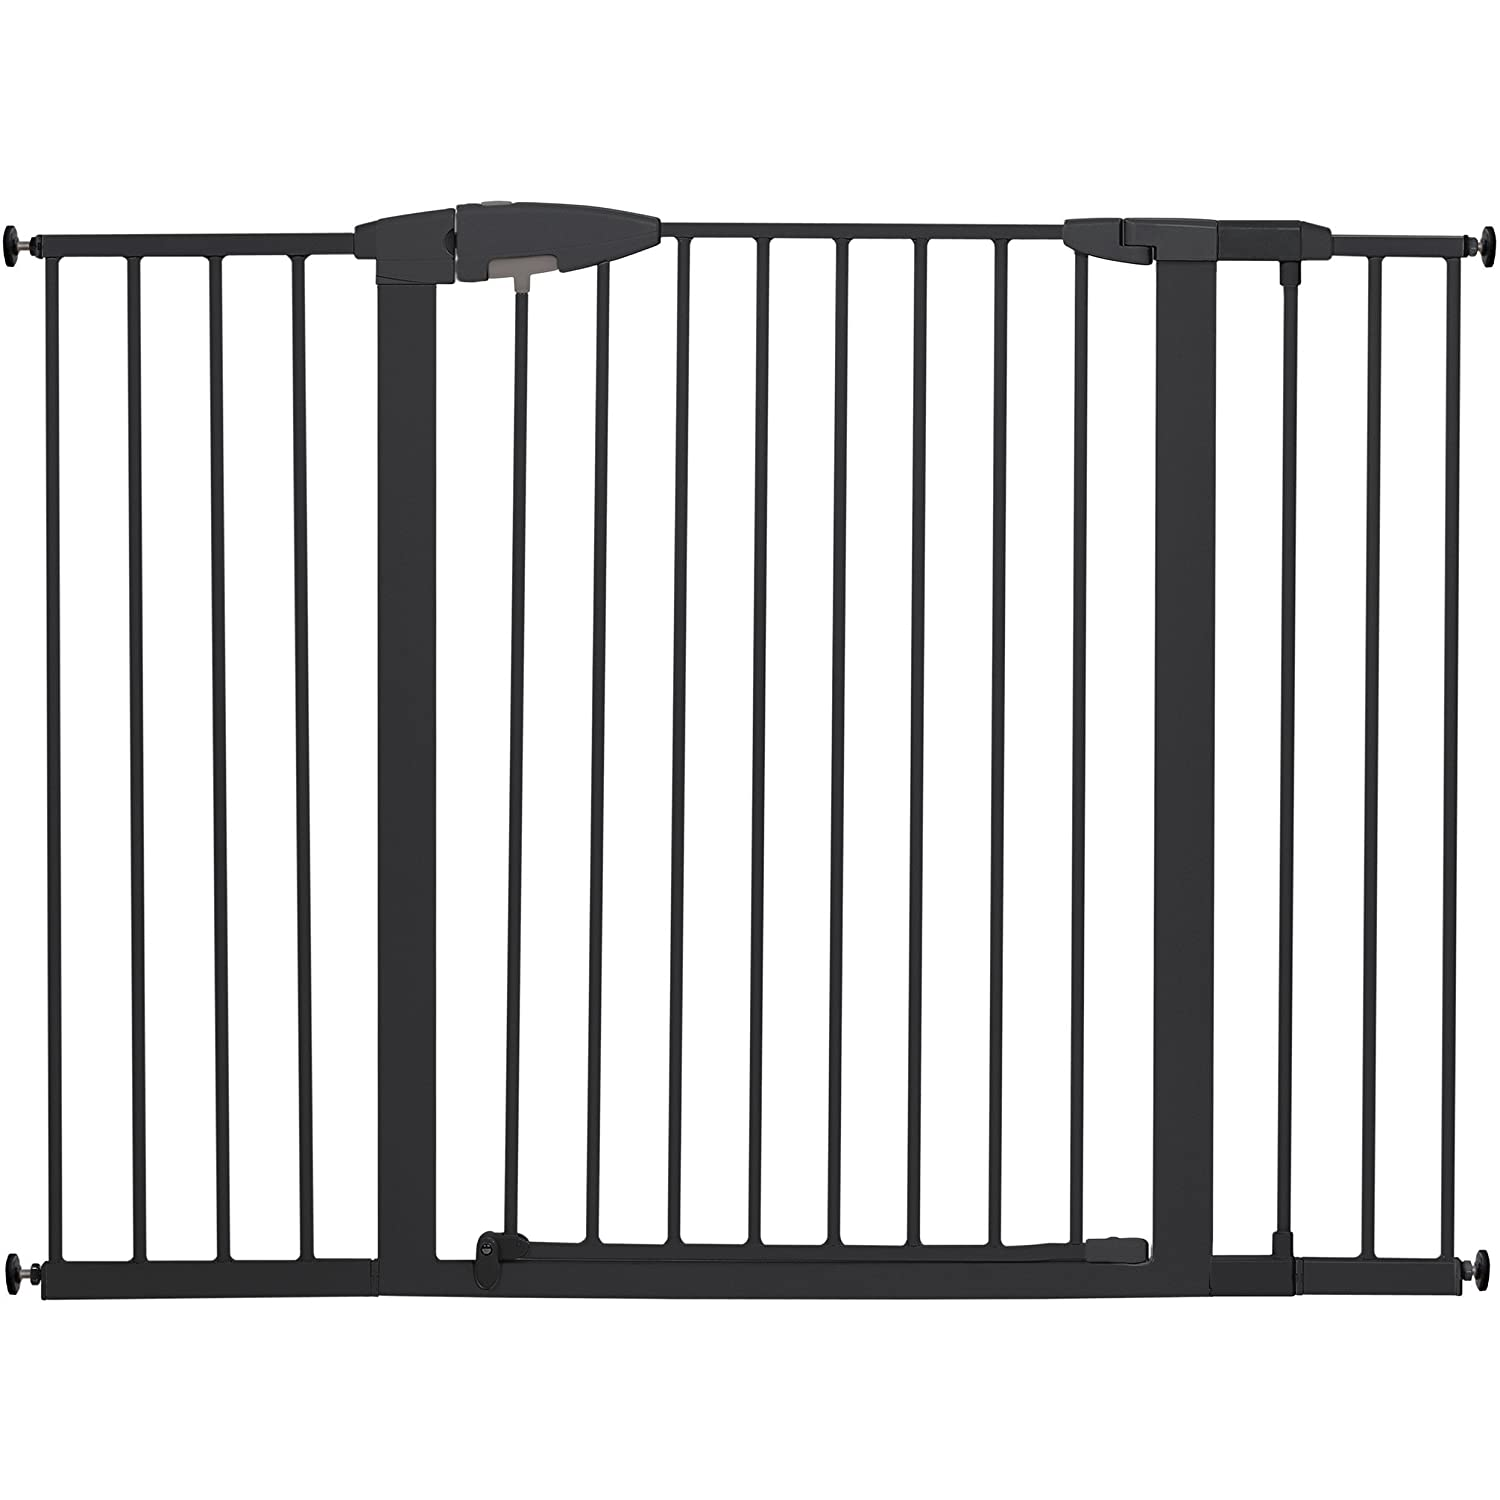 Munchkin Easy Close XL Metal Baby Gate, 29.5 - 51.6 Wide, Black, Model MK0009-111 29.5 - 51.6 Wide 46765